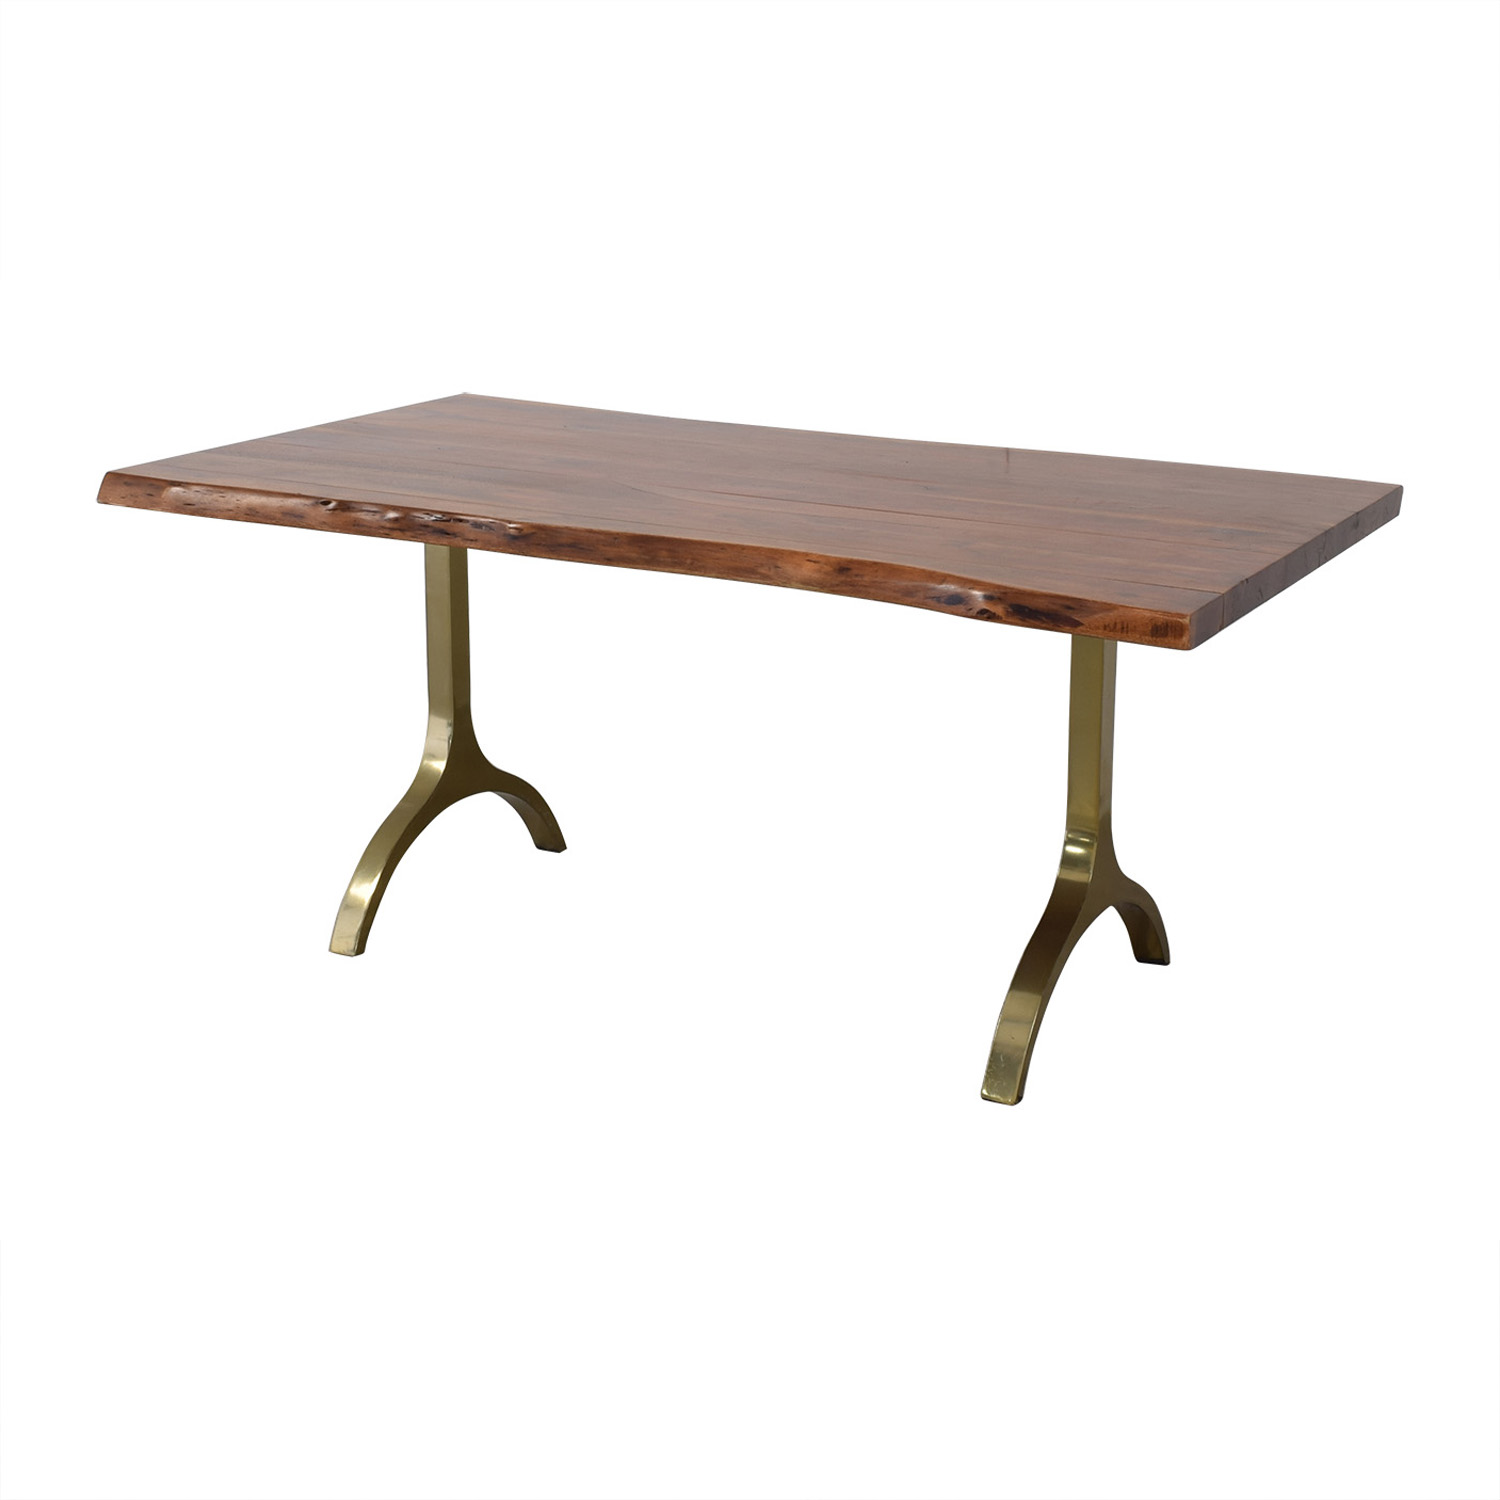 West Elm West Elm Live Edge Dining Table for sale